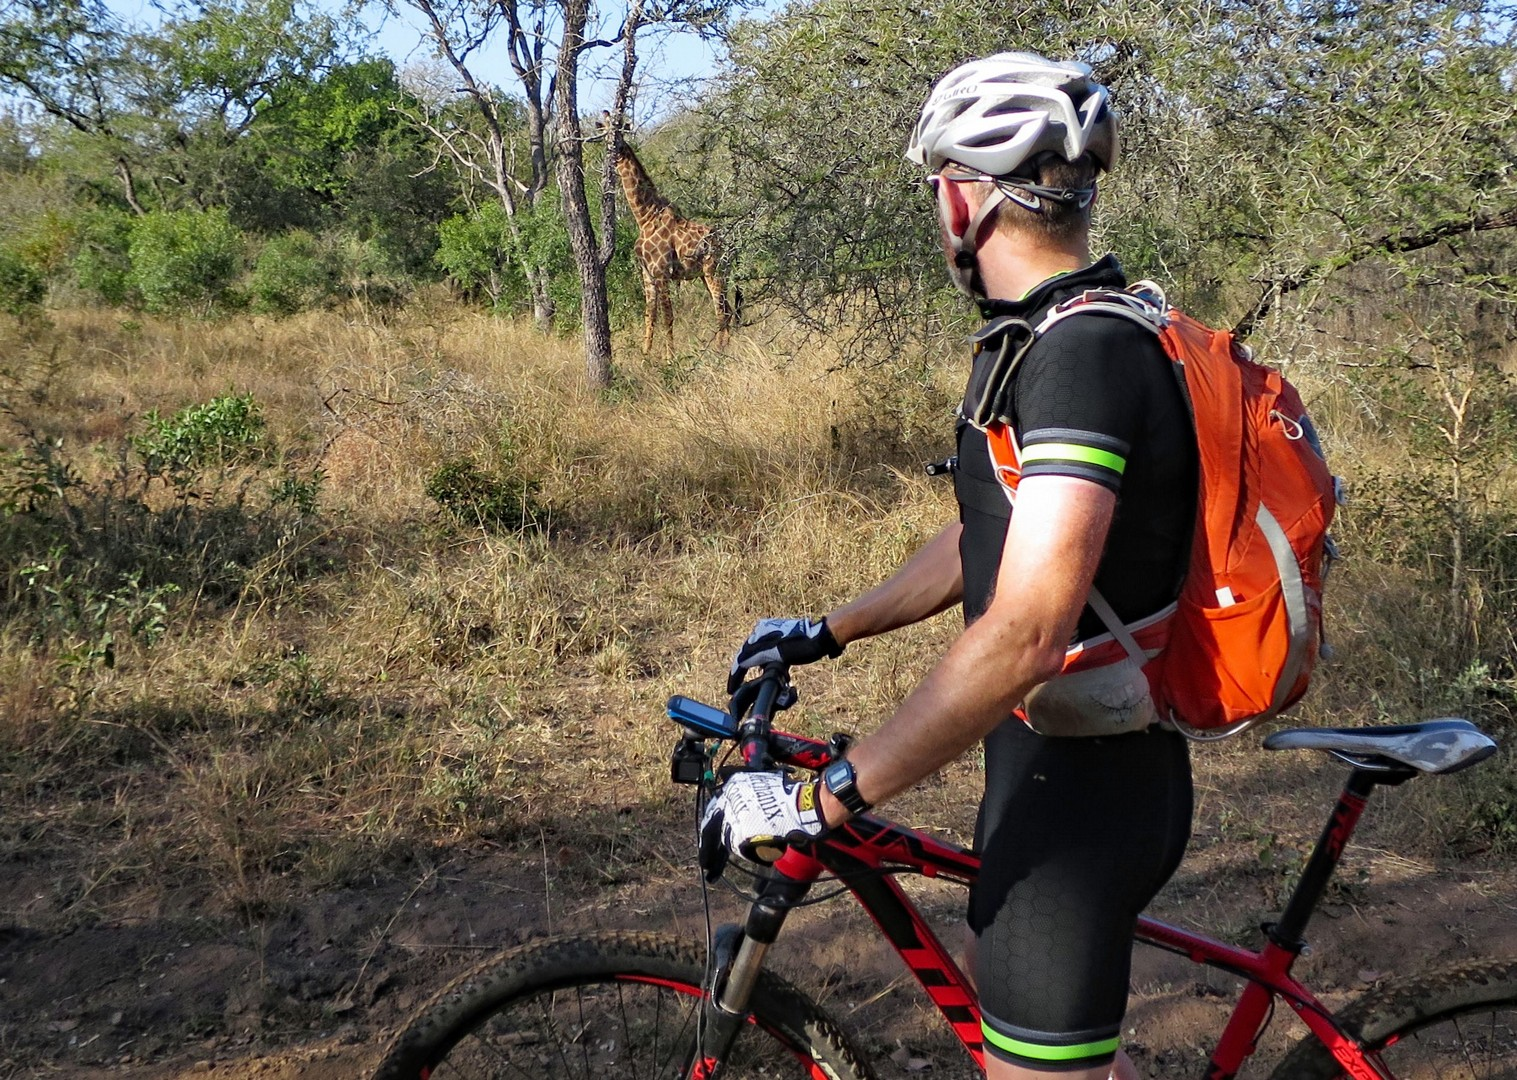 cycling-holiday-in-swaziland-cycling-adventure-africa-cycling safari.jpg - Eswatini (Swaziland) - Cycling Safari - Cycling Adventures